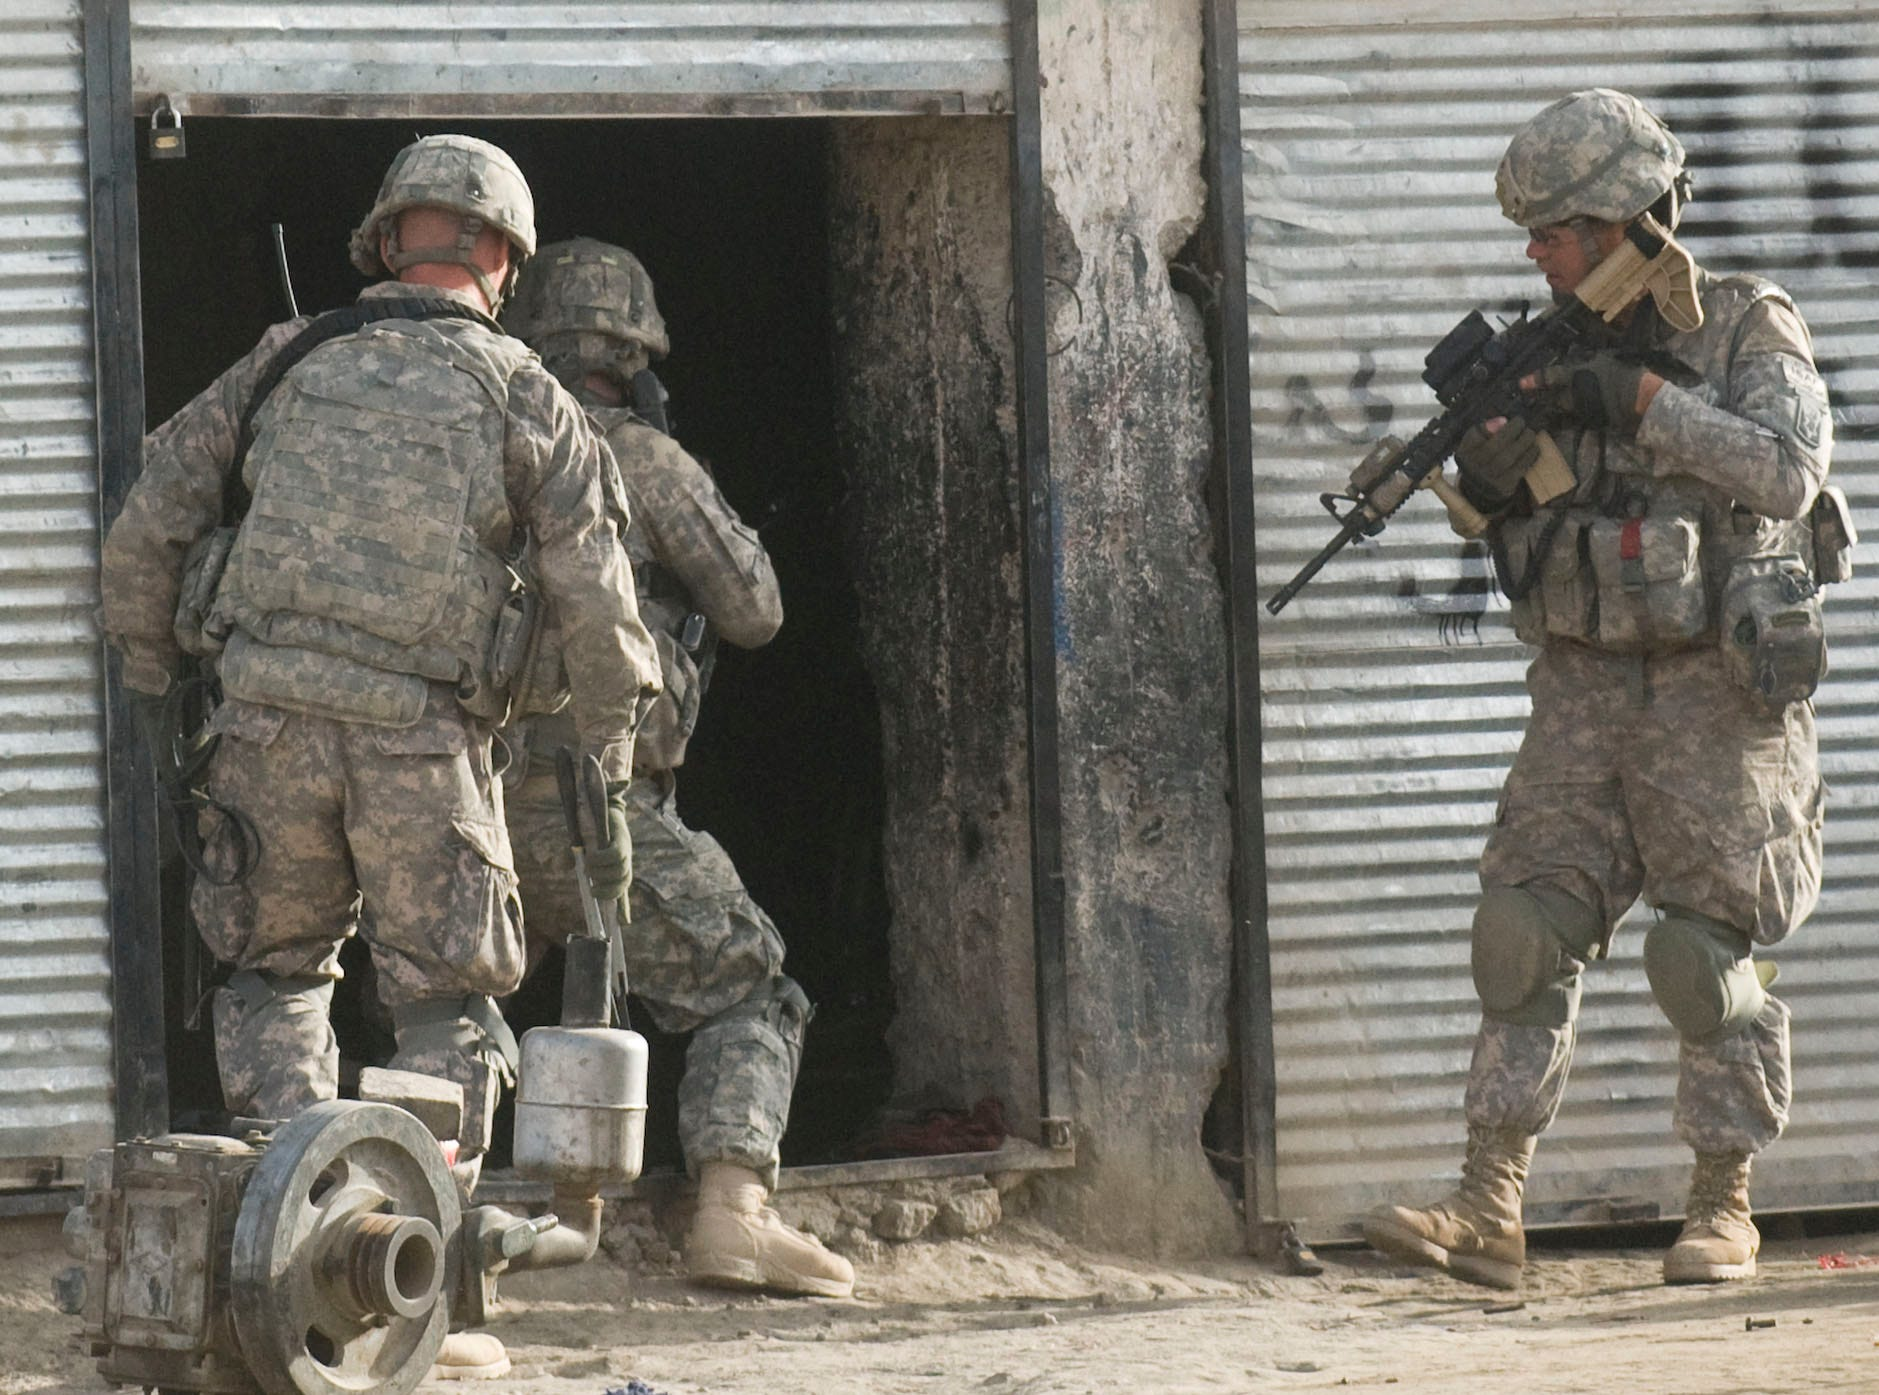 Right, Vermont National Guard Sgt. Donald Stocker of Bellows Falls, Vt., covers fellow soldiers entering a building in downtown Gardez in Paktia province, Afghanistan, Friday morning, September 17, 2010, looking for suspected IED and weapons caches. The early-morning raid was delayed several hours after local Afghan police failed to show up on time, leading some soldiers to question weather insurgents were tipped off before the raid.